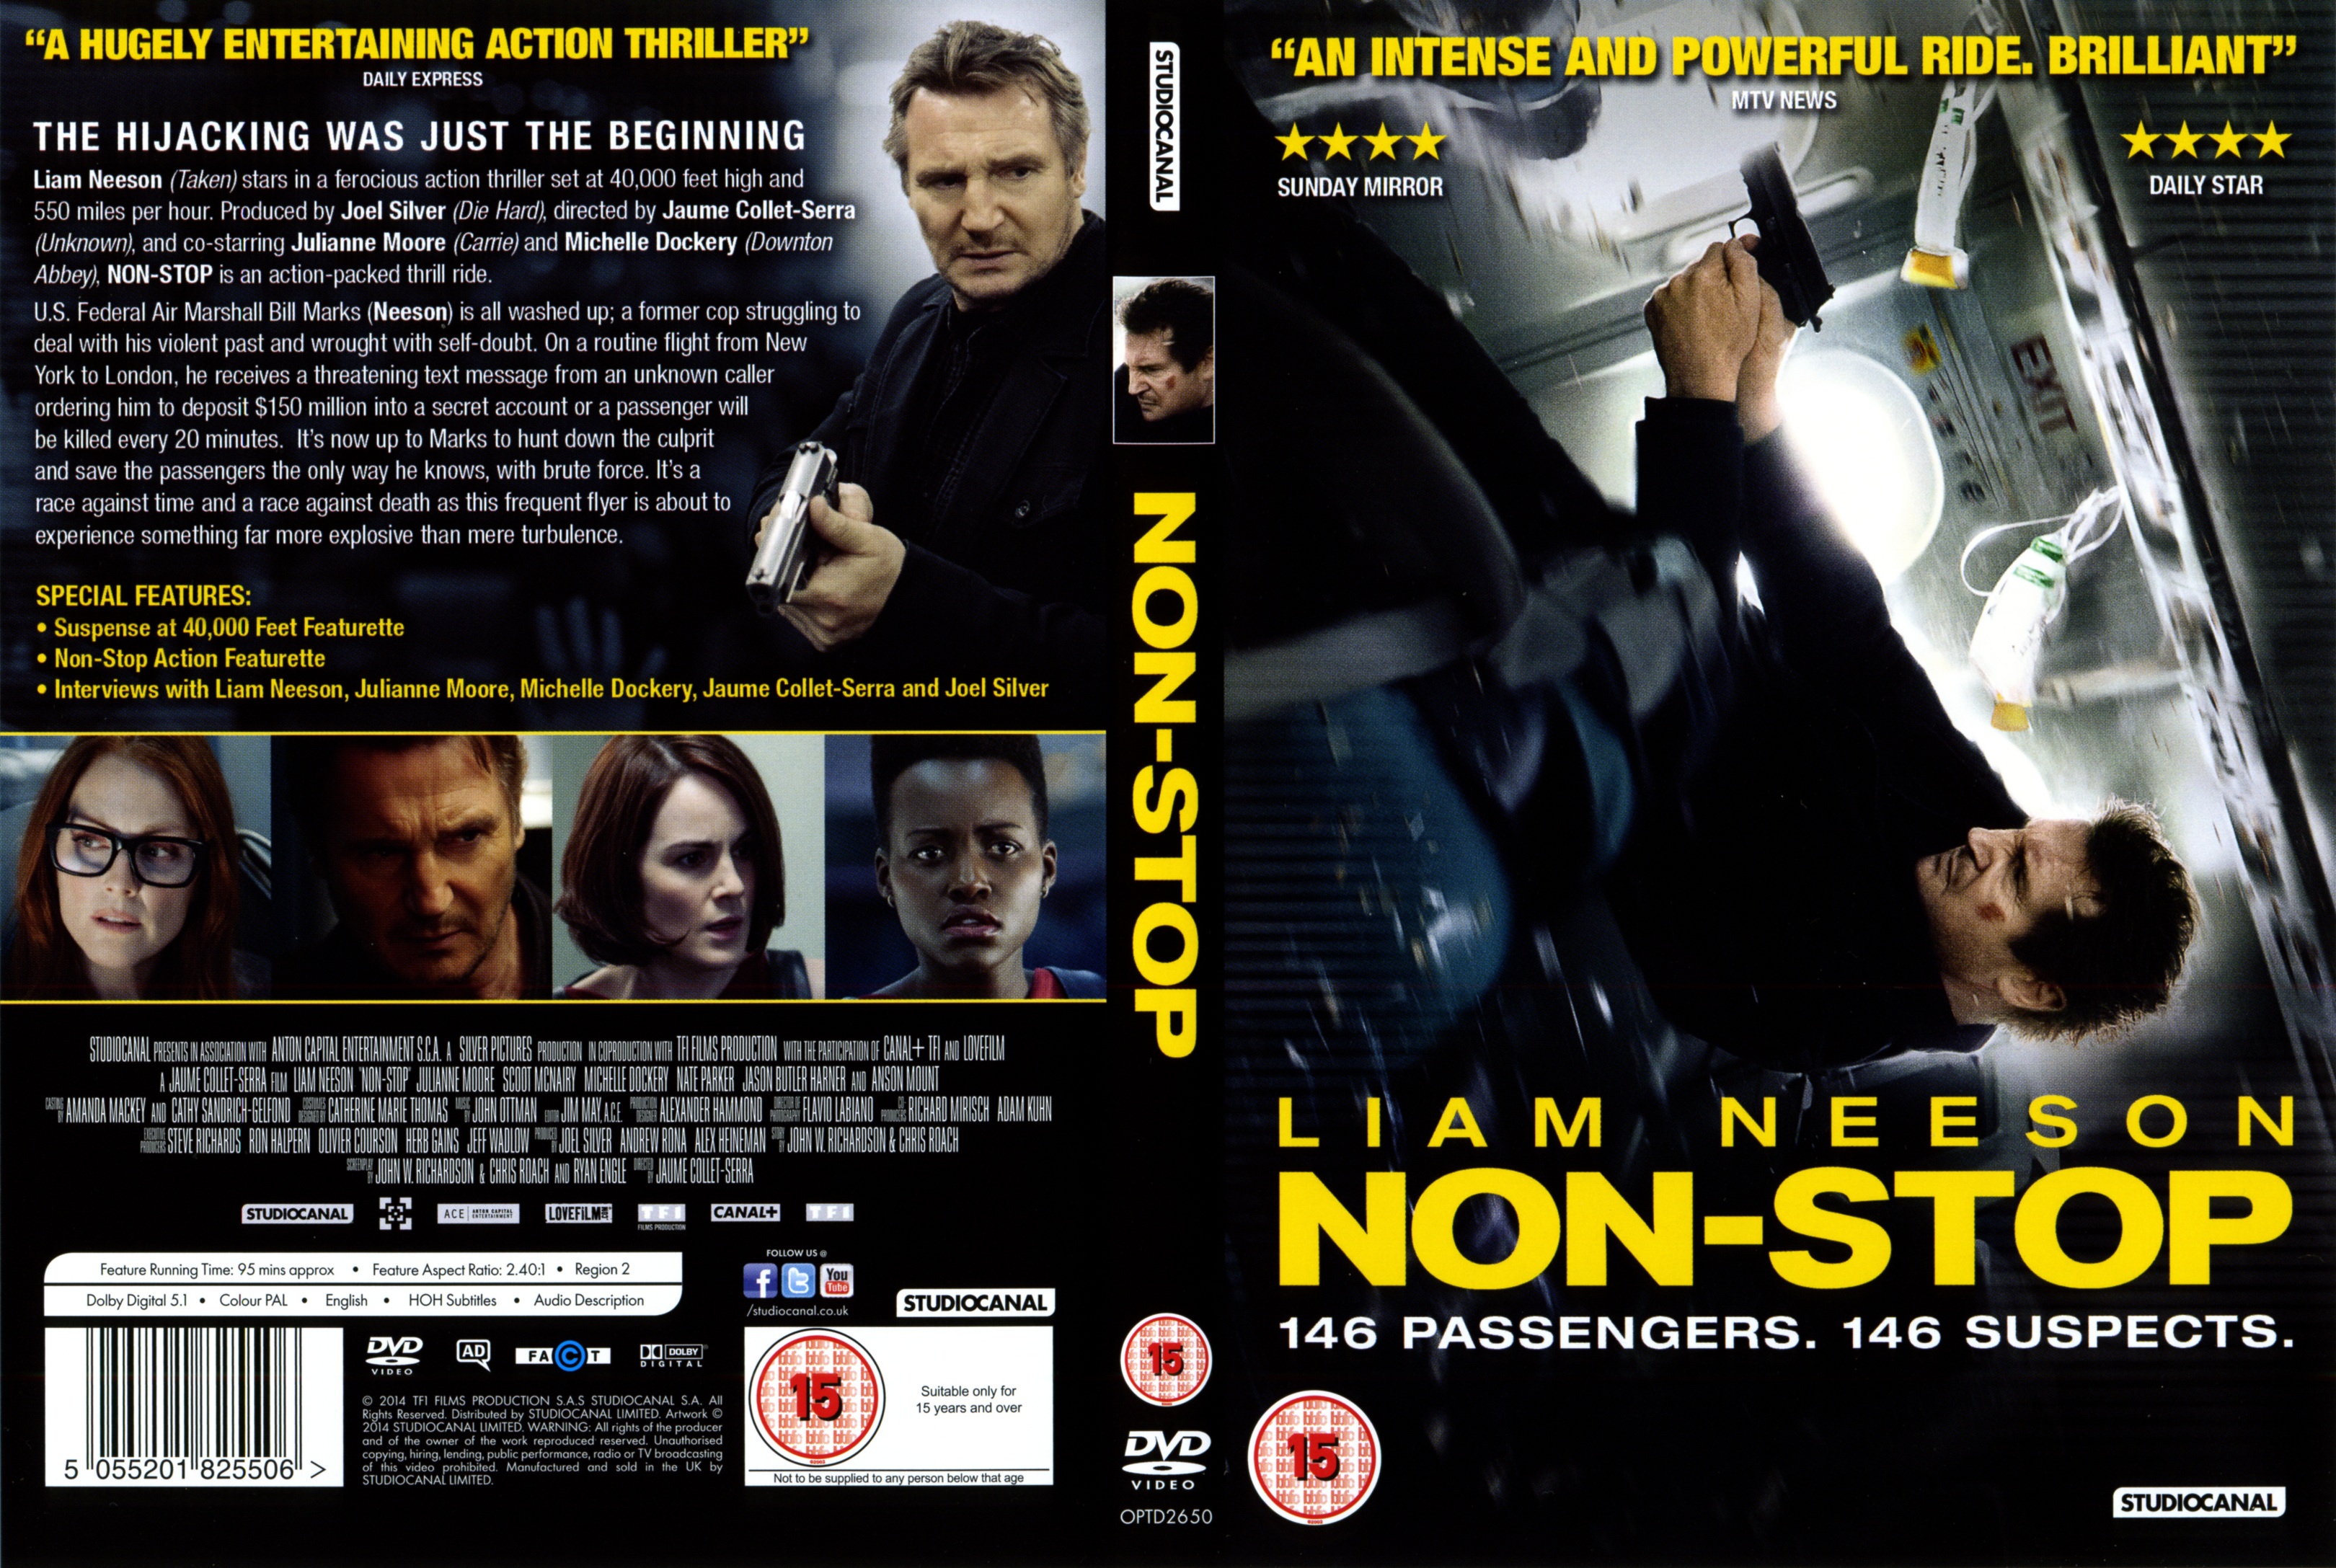 Non Stop 2014 Dvd Covers Cover Century Over 500 000 Album Art Covers For Free